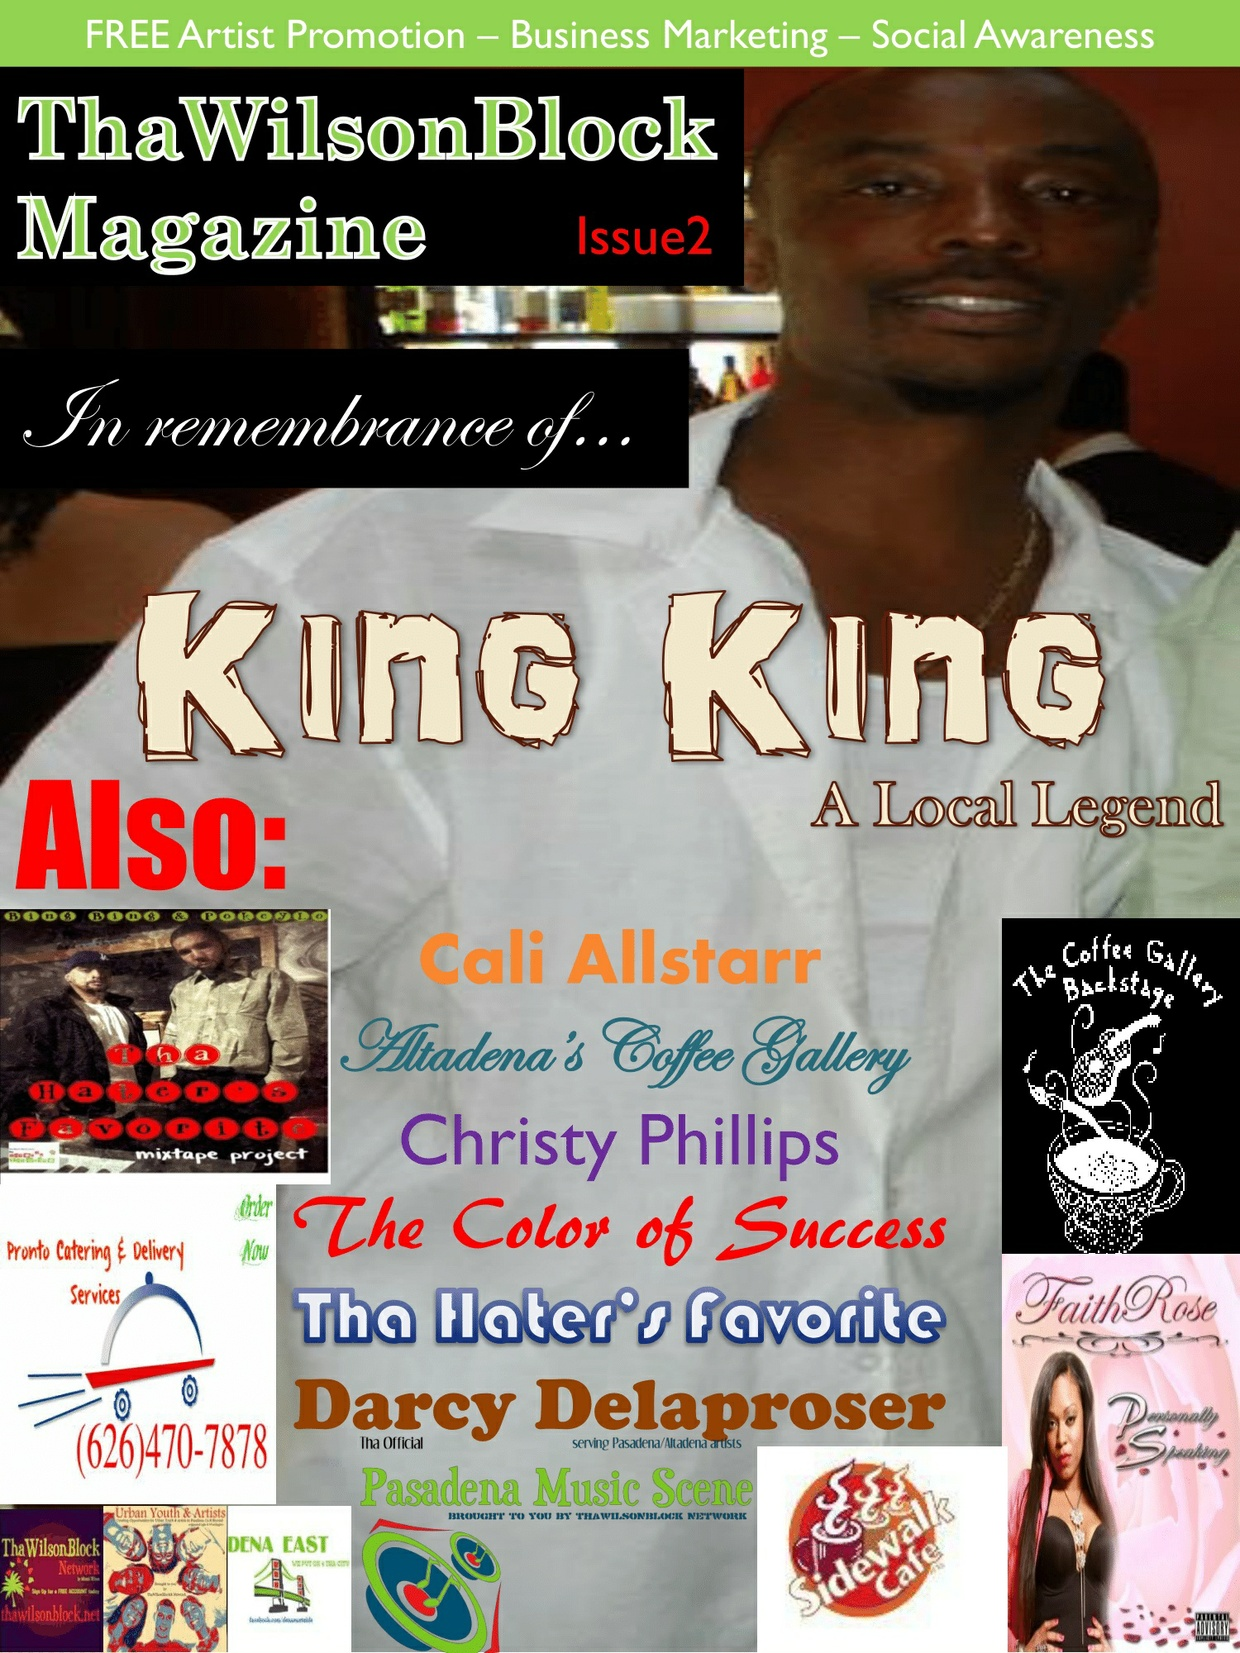 ThaWilsonBlock Magazine Issue2